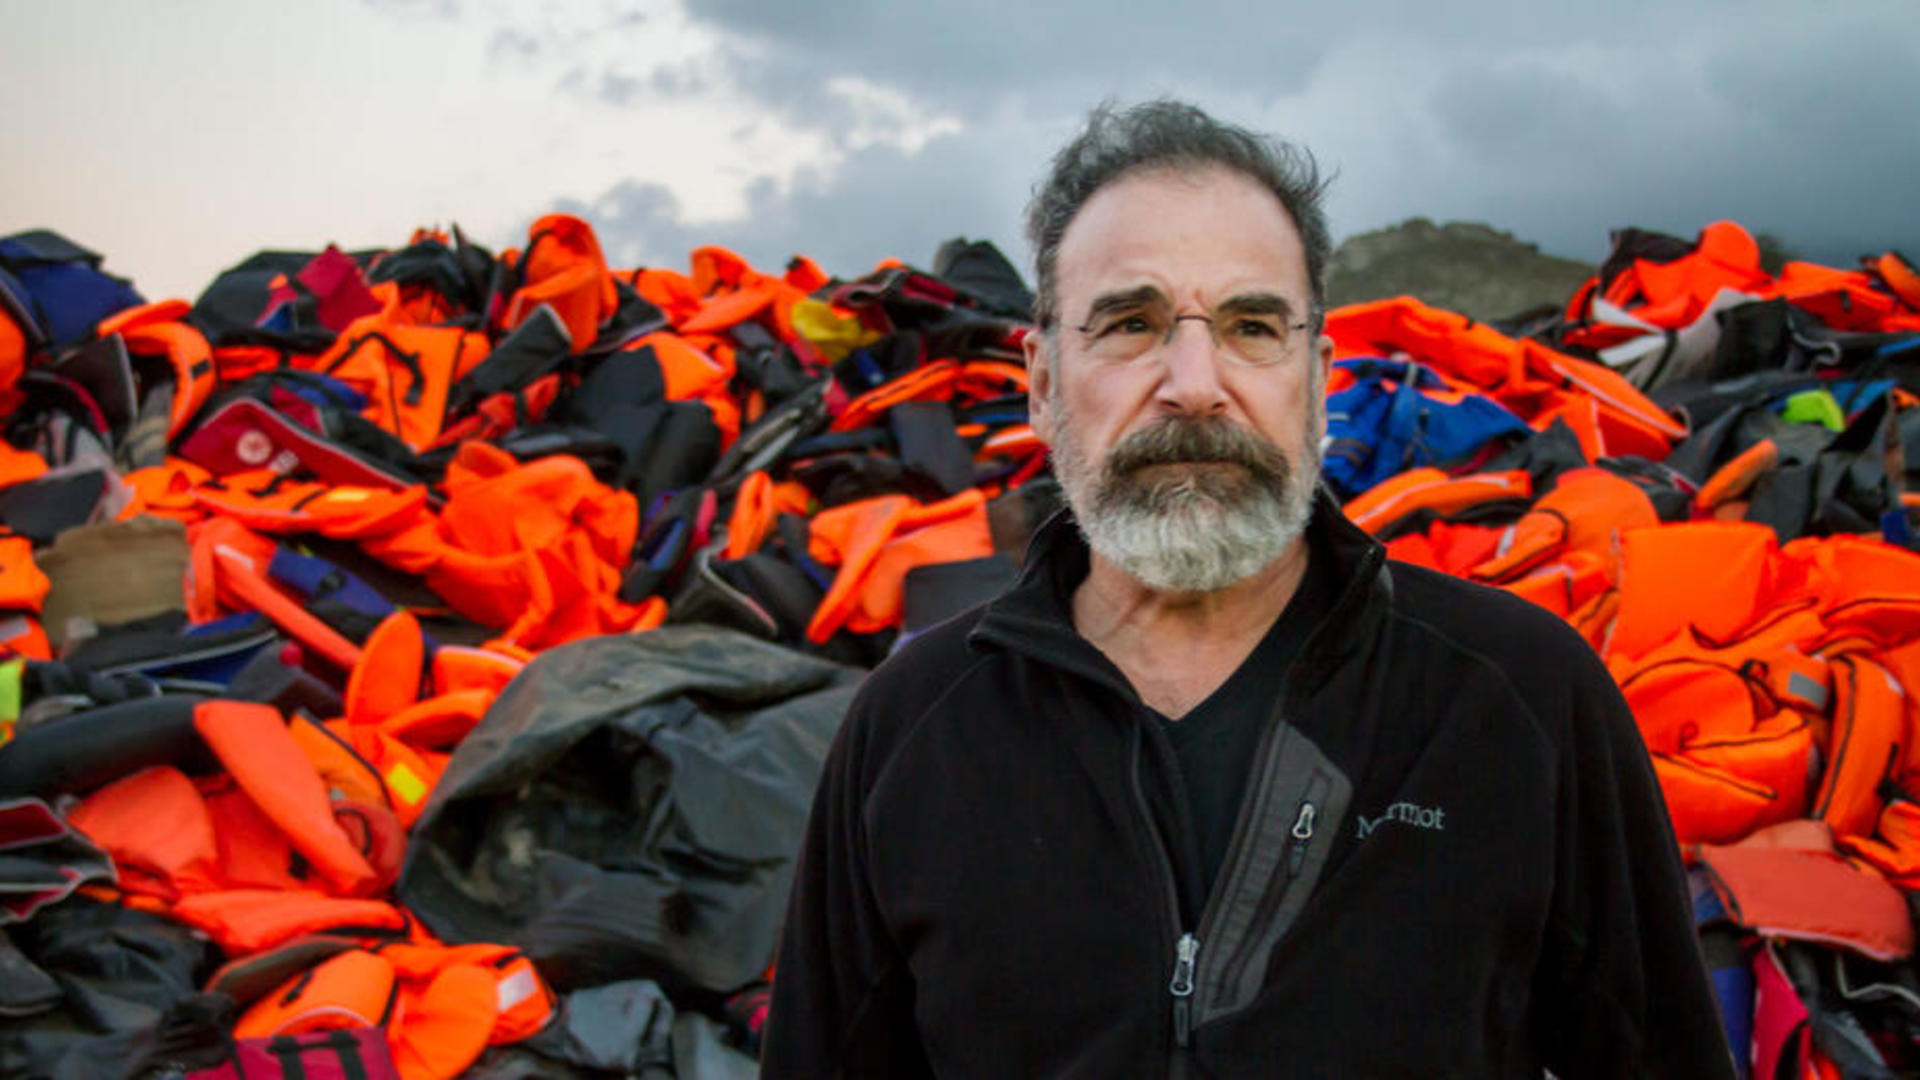 Mandy Patinkin in Greece, with a mountain of refugees' lifejackets